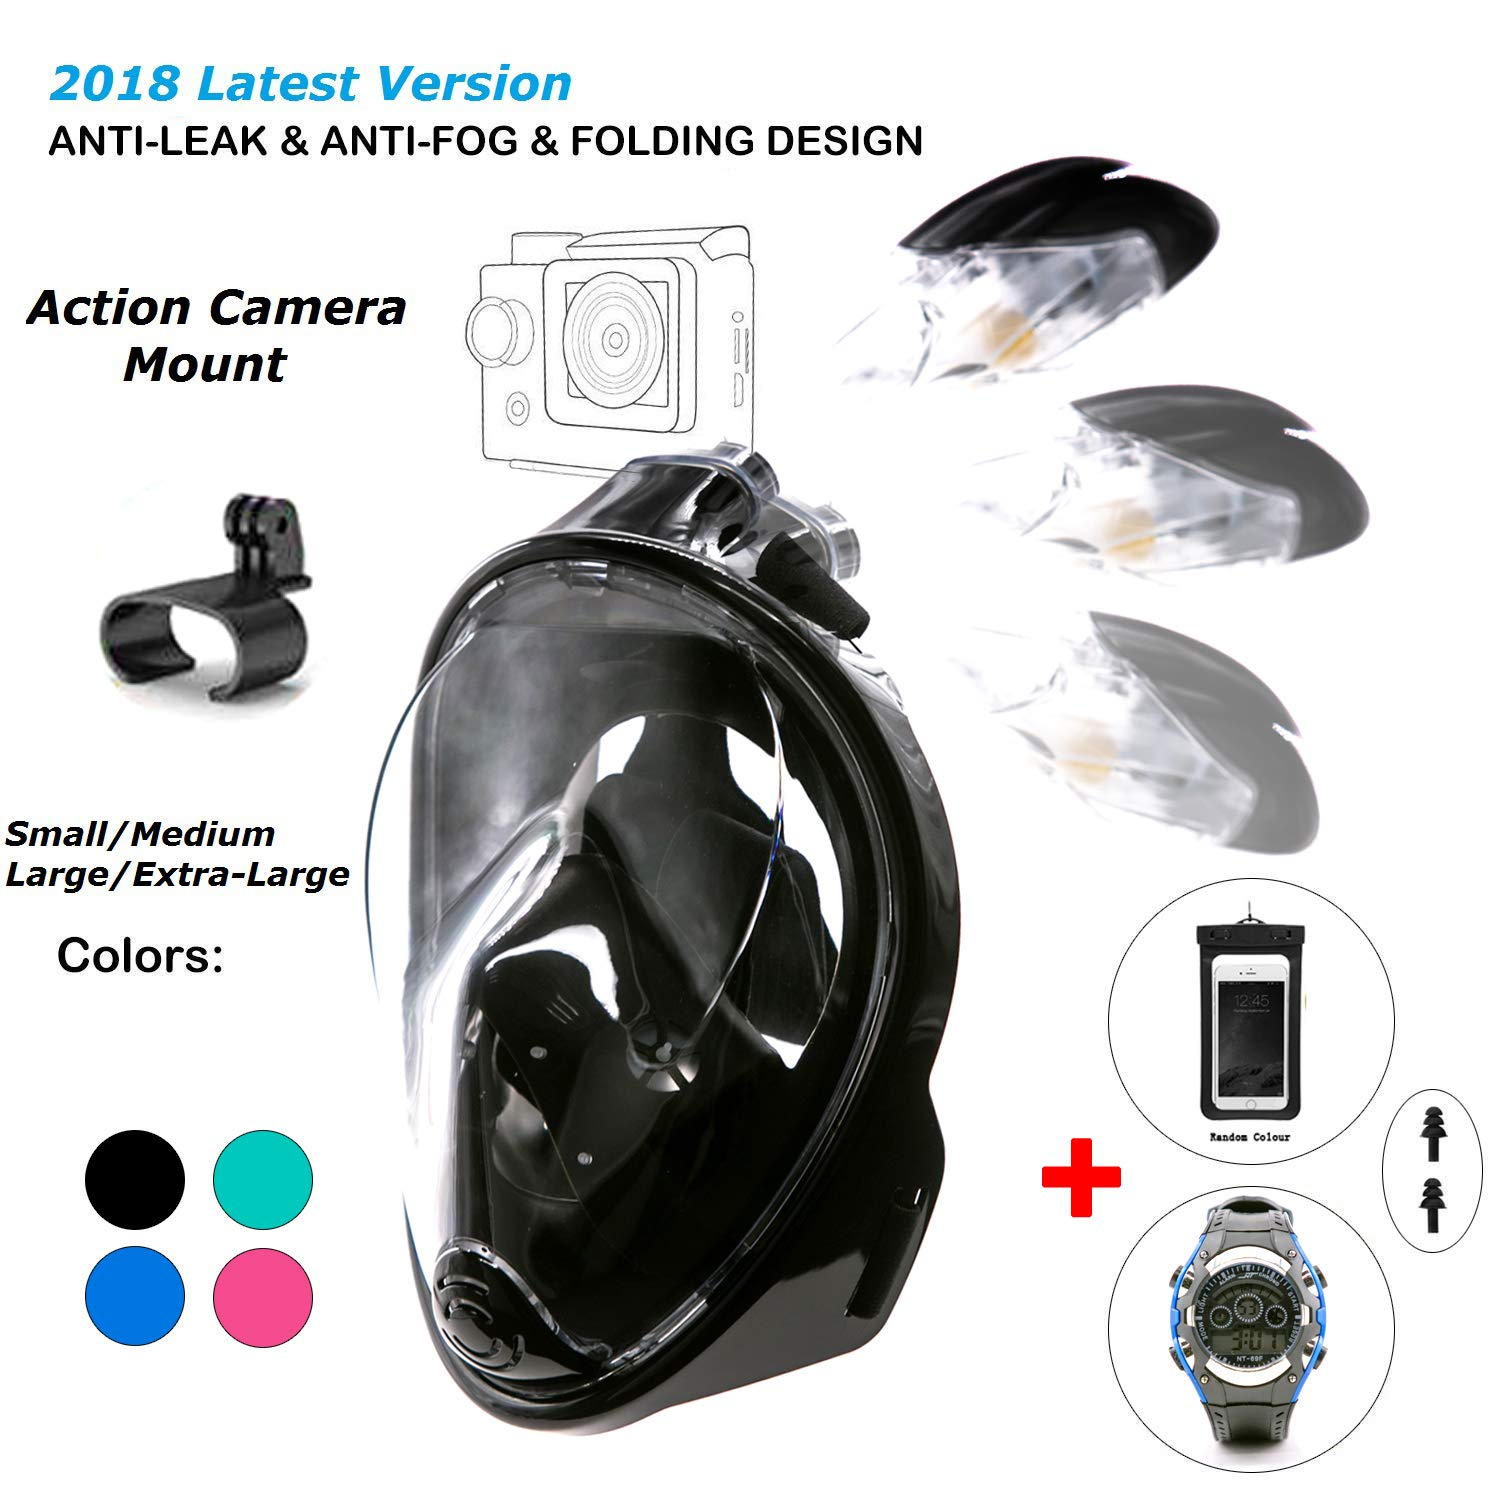 180° Snorkel Mask View for Adults and Youth. Full Face Free Breathing Folding Design.[Free Bonuses] Cell Phone Universal Waterproof Case and 30m Waterproof Watch (Black, Small/Medium)